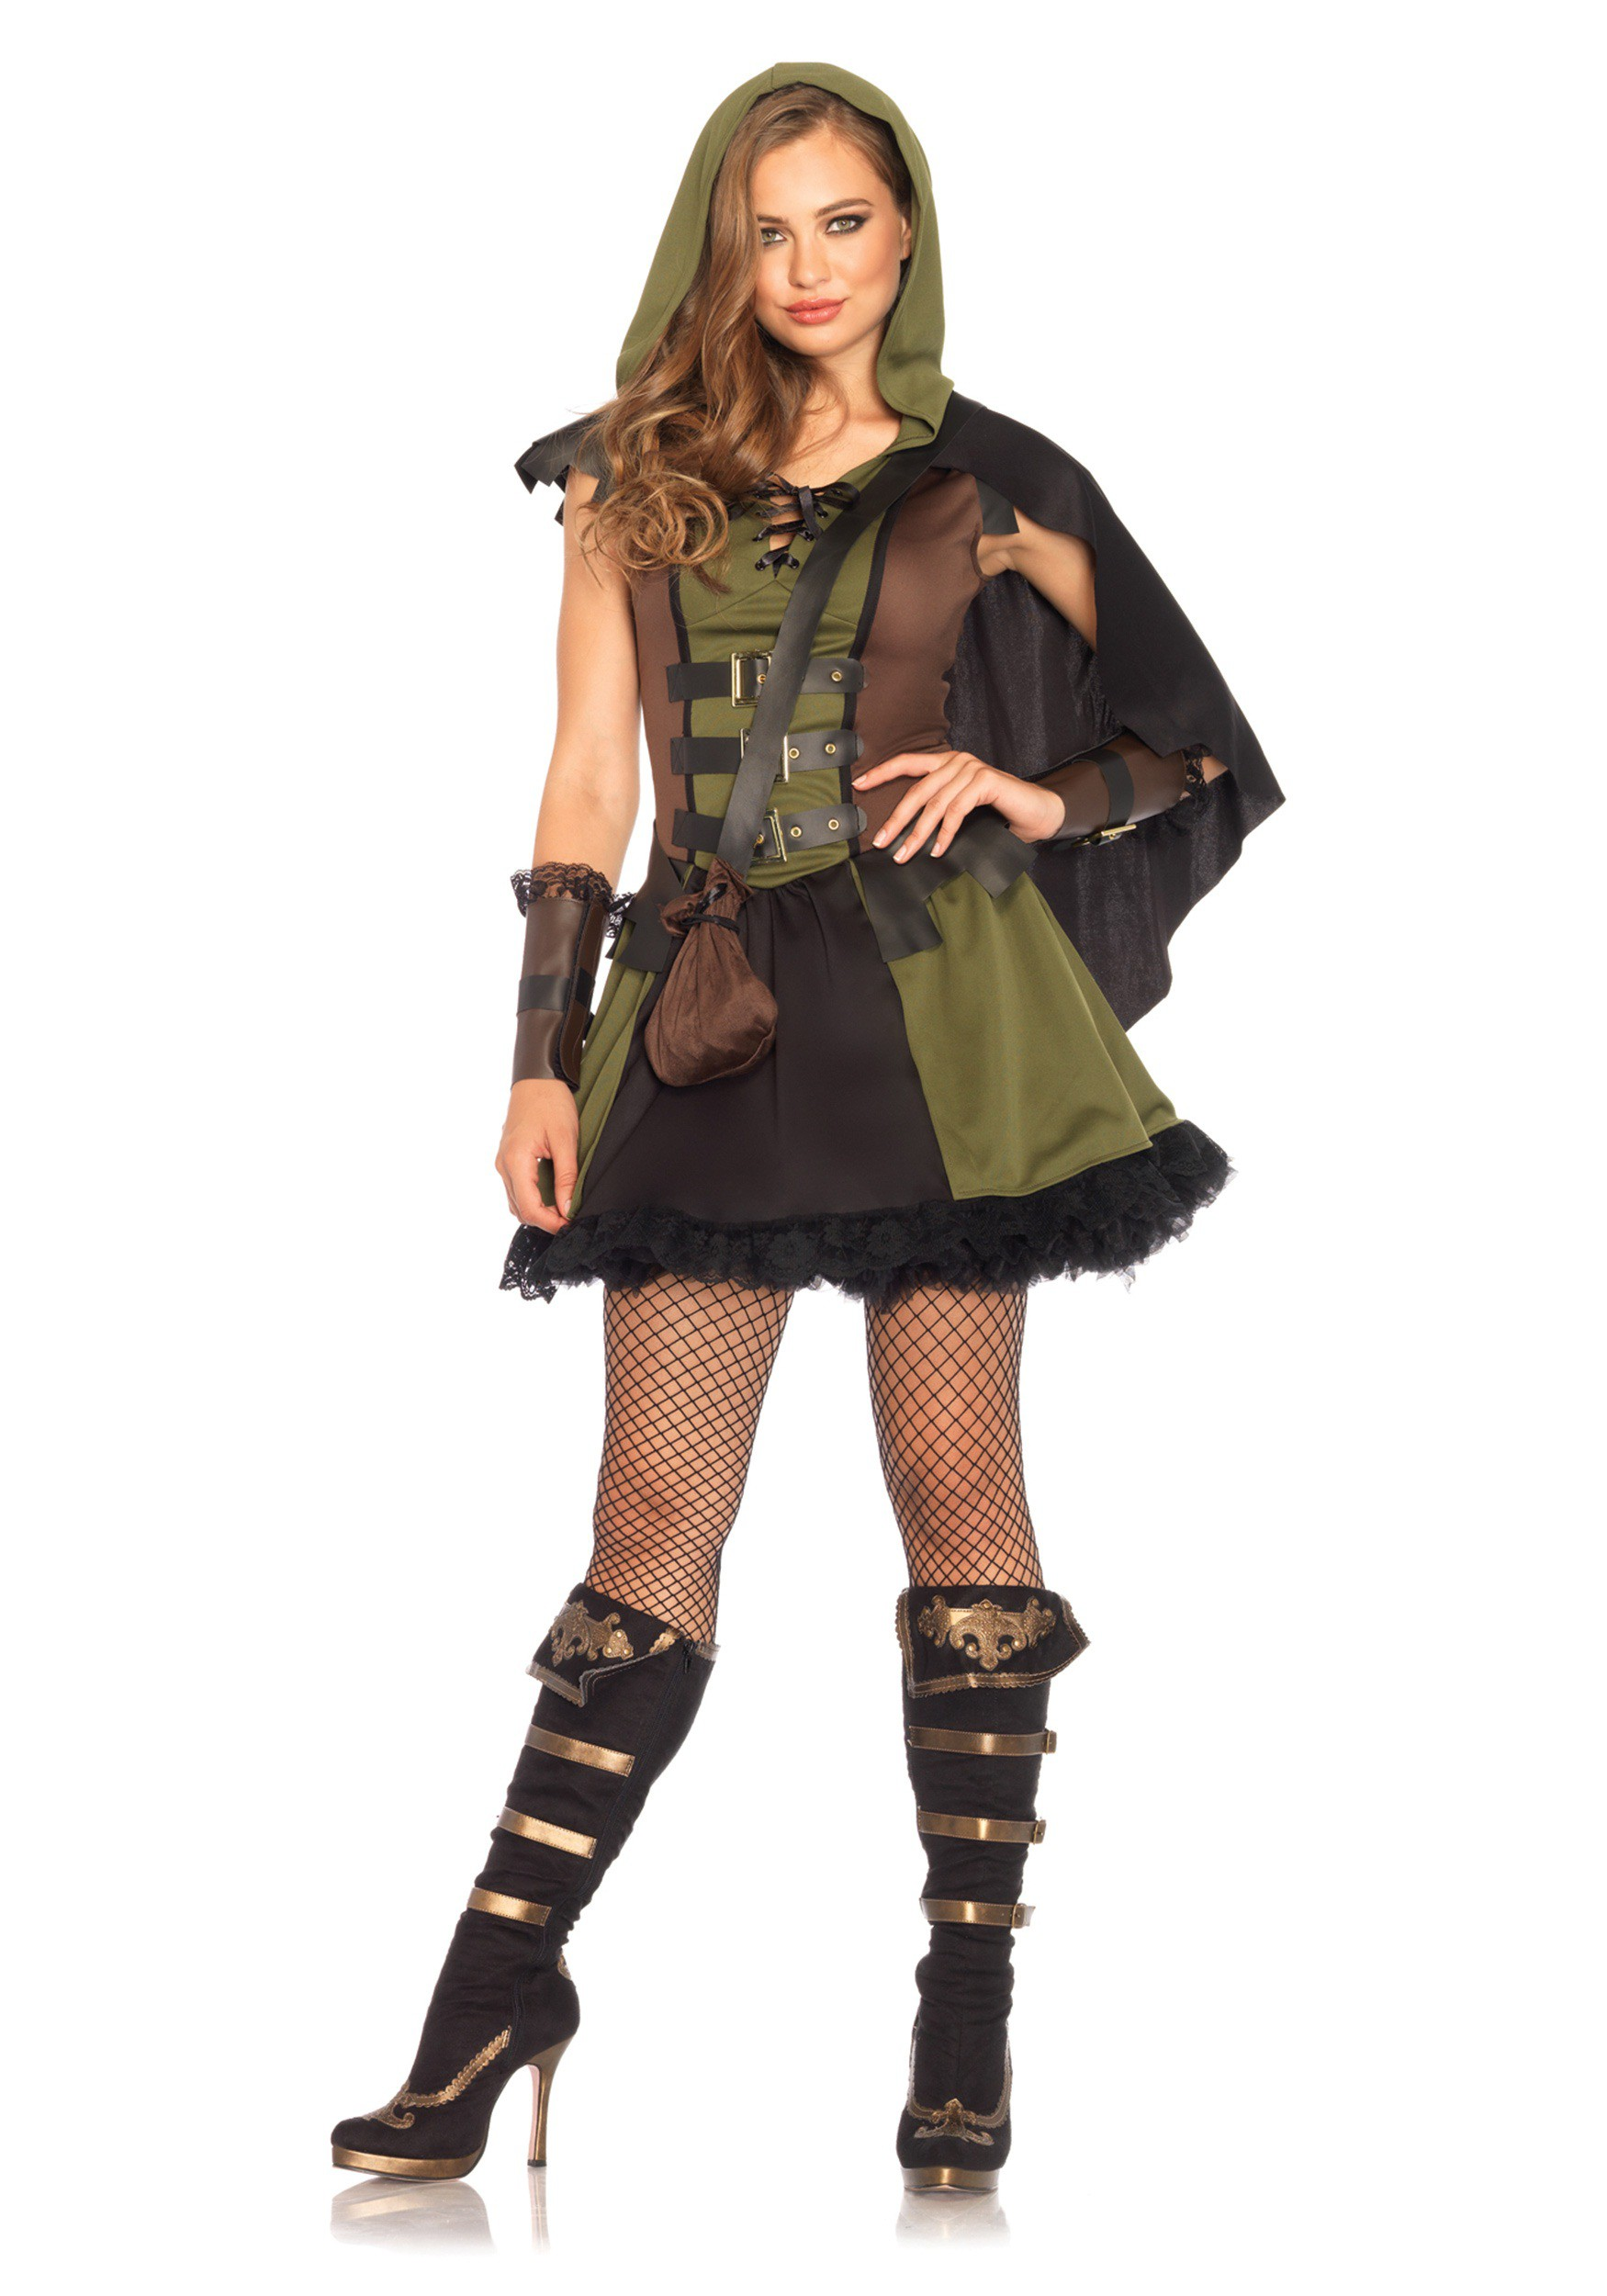 women 39 s darling robin hood costume. Black Bedroom Furniture Sets. Home Design Ideas